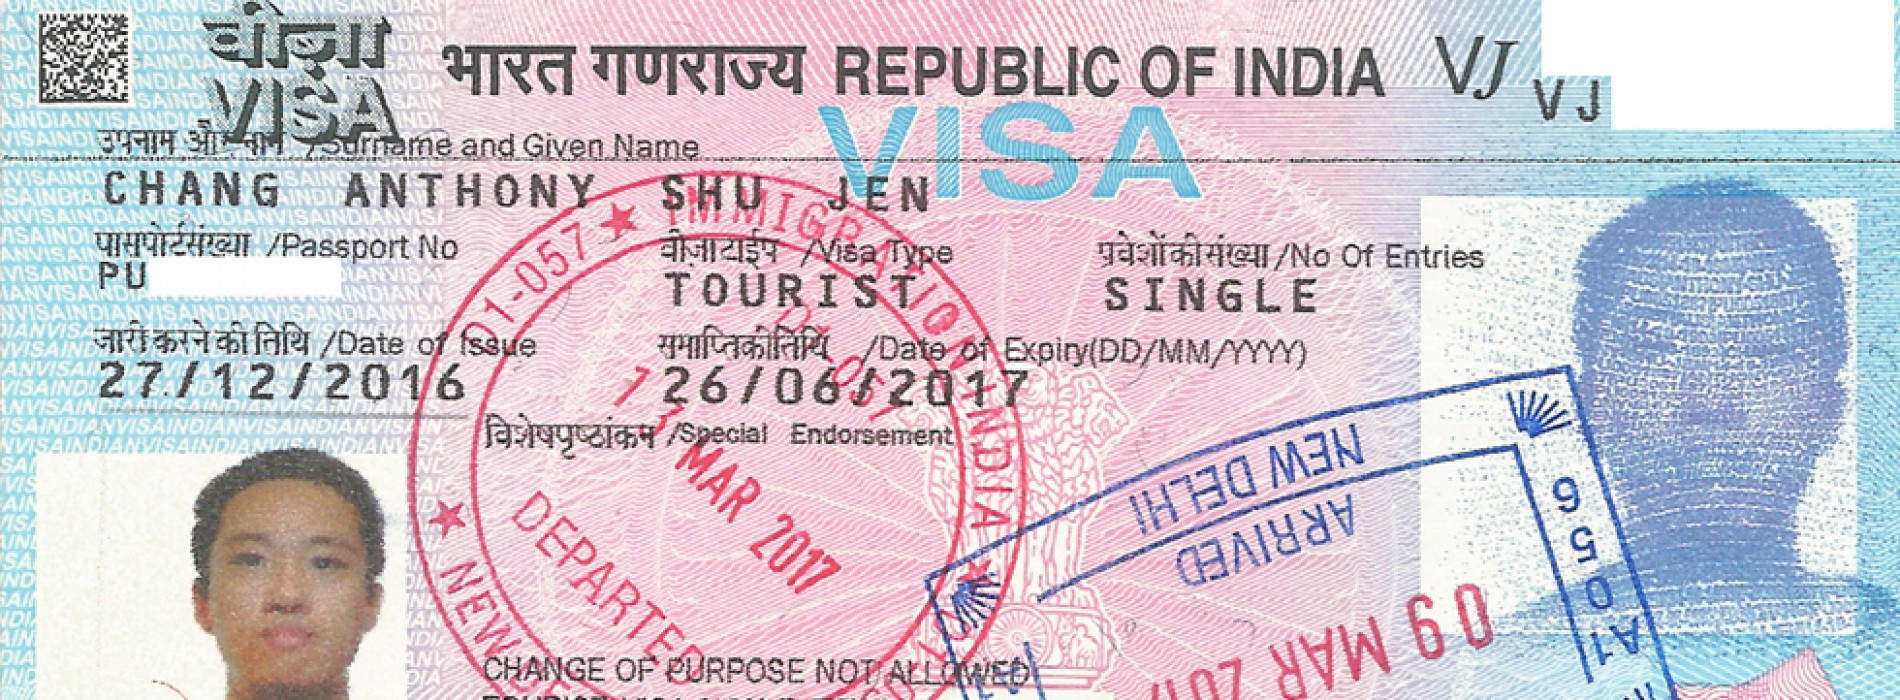 INDIA LIKELY TO REVERT TO IN-HOUSE VISA APPLICATION PROCESSING ABROAD